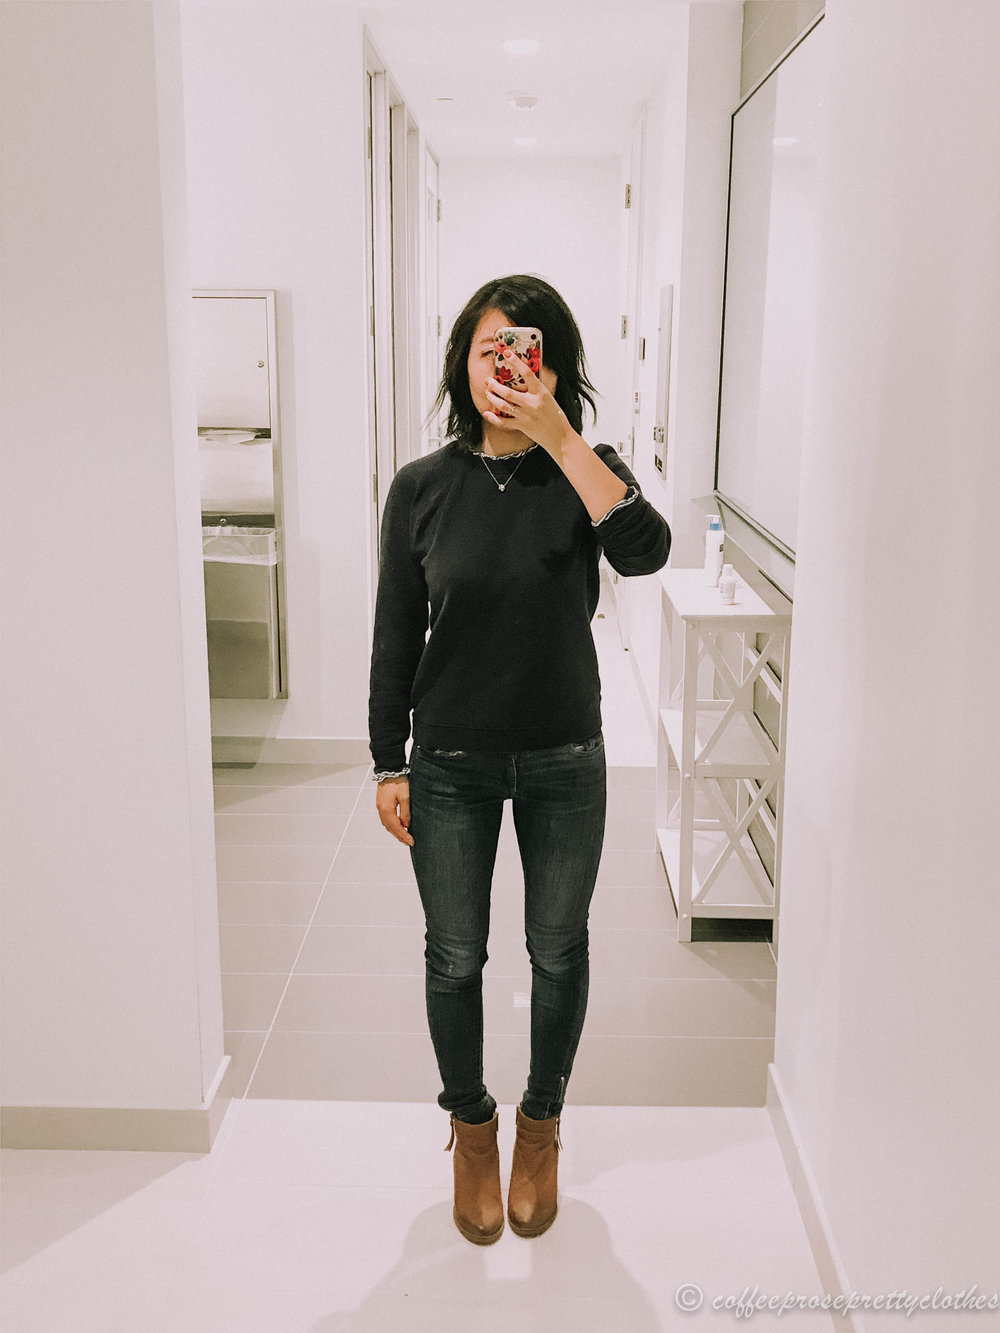 J.Crew Factory sweater and Blondo booties